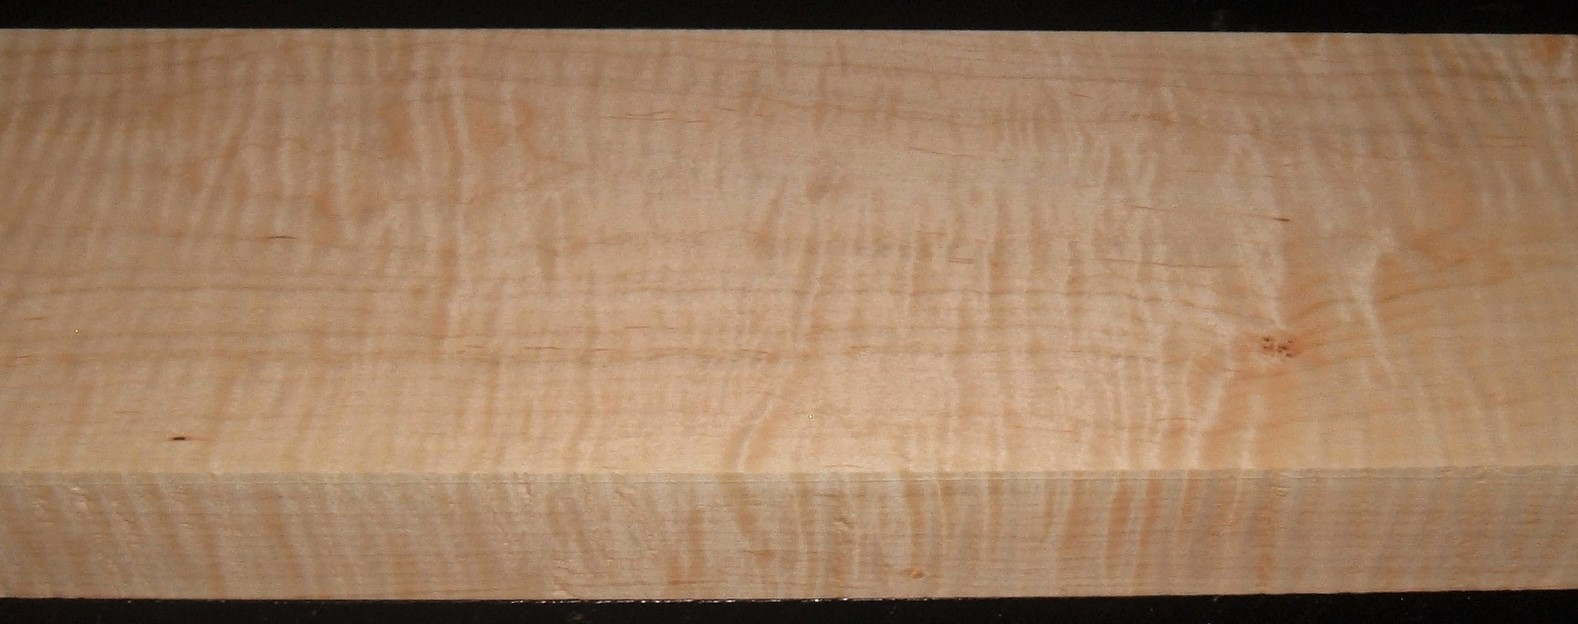 M2004-374JJ, 1-13/16x6-5/8x57, Curly Tiger Maple